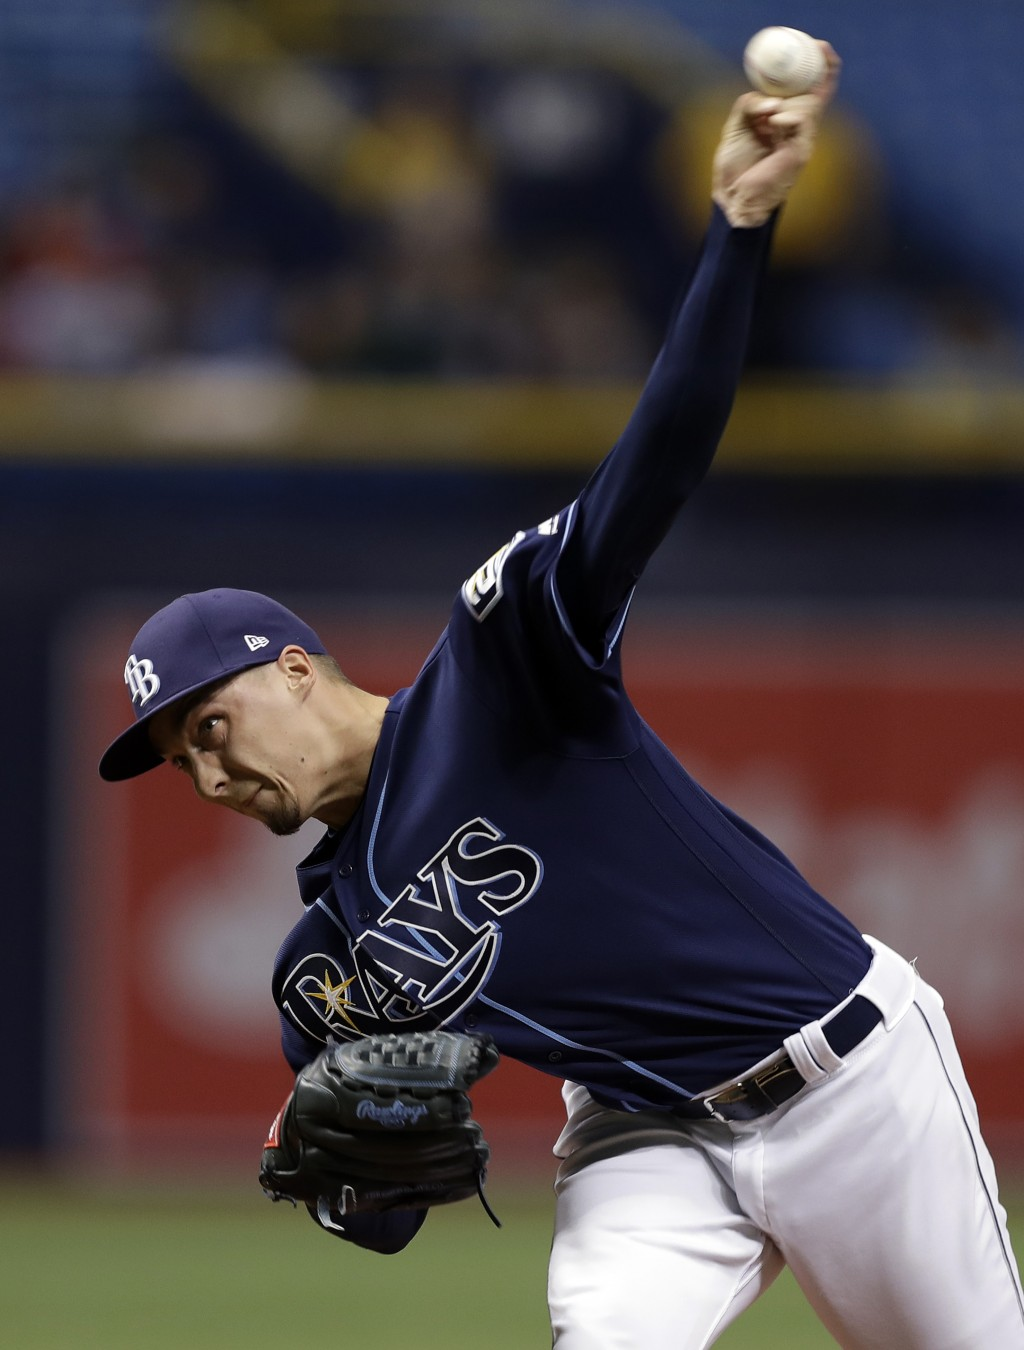 Tampa Bay Rays' Blake Snell pitches to the Texas Rangers during the first inning of a baseball game Monday, April 16, 2018, in St. Petersburg, Fla. (A